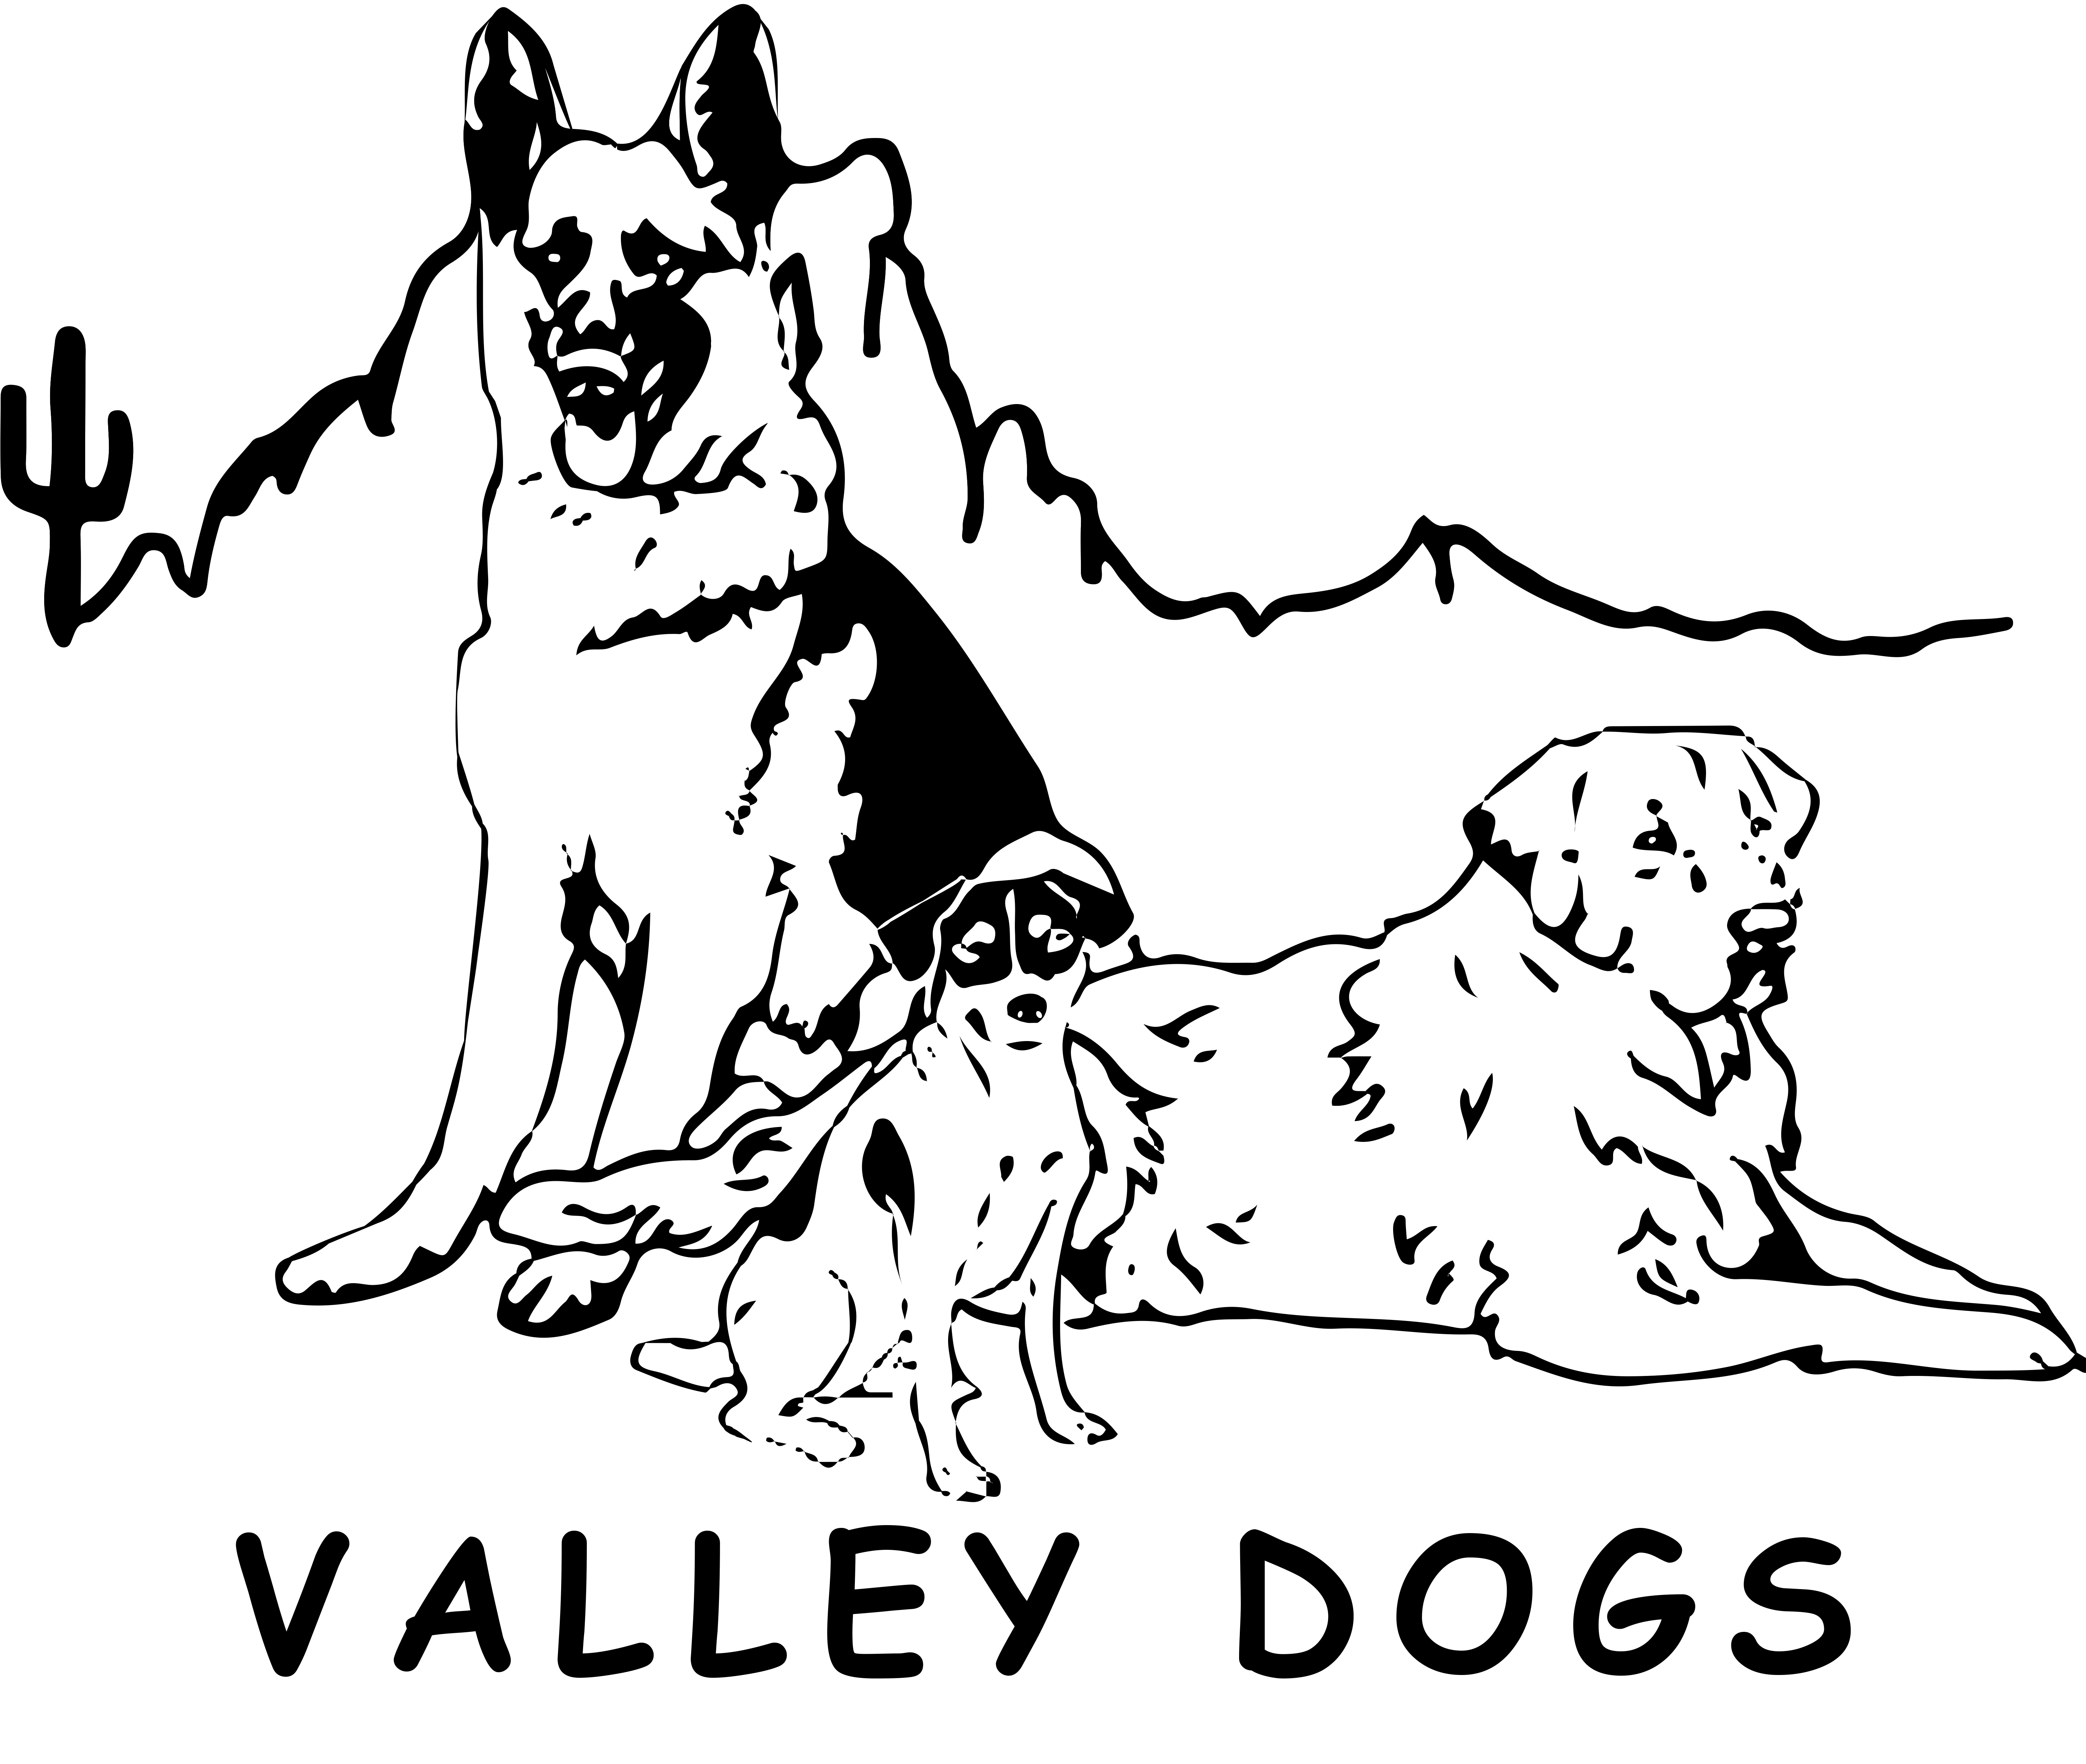 Valley Dogs